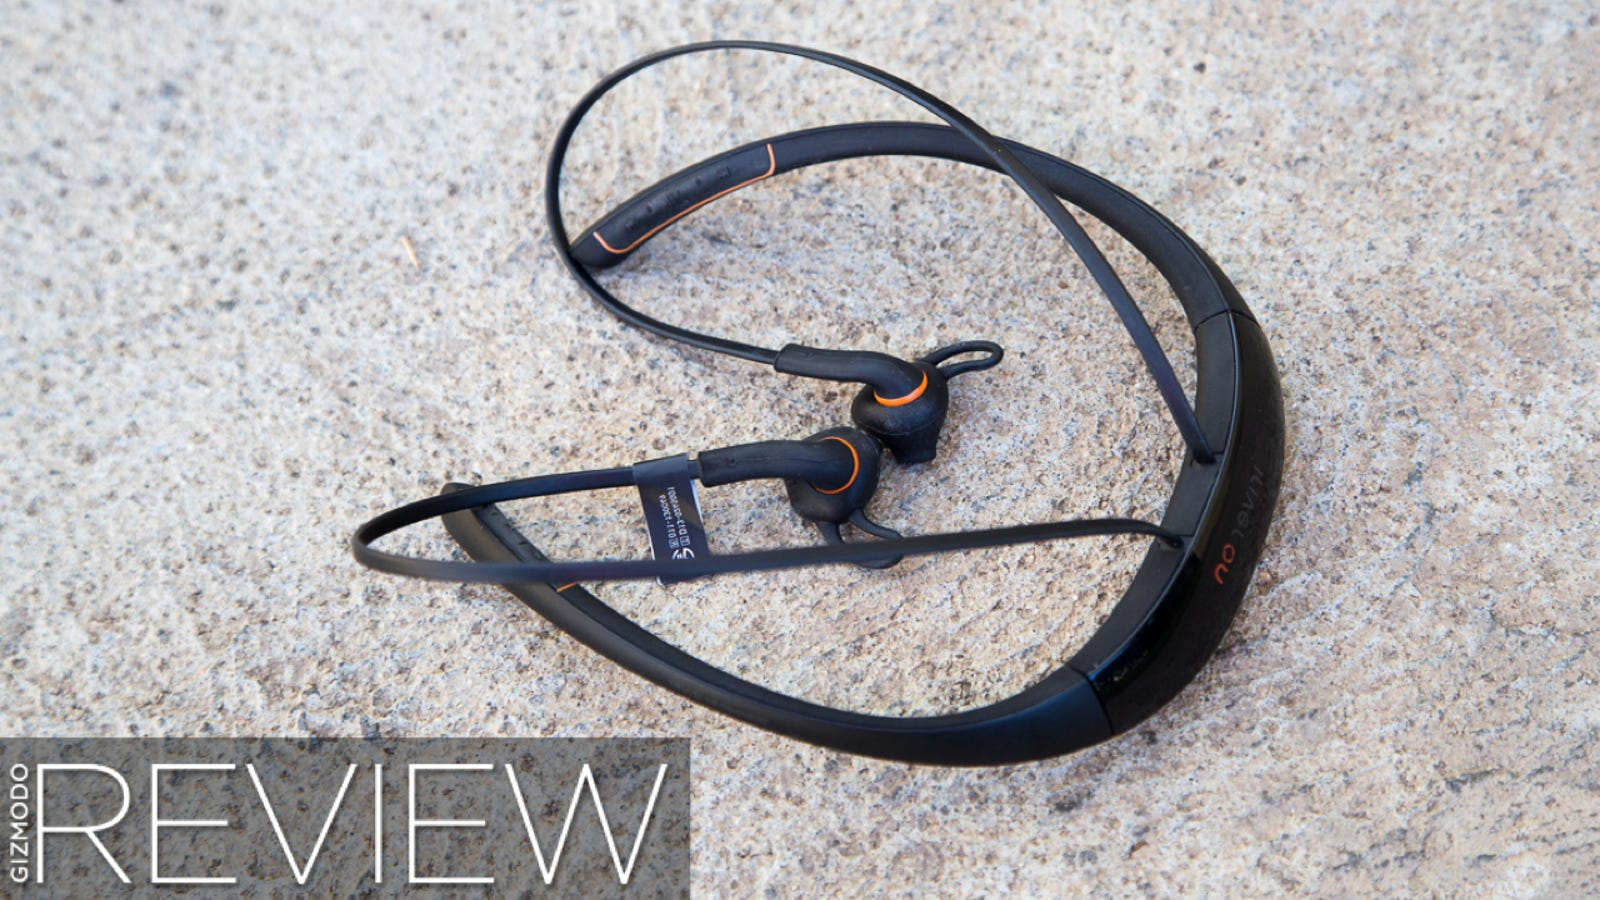 wireless headphones dash - iRiver On Review: When Bad Apps Ruin Great Fitness Gadgets